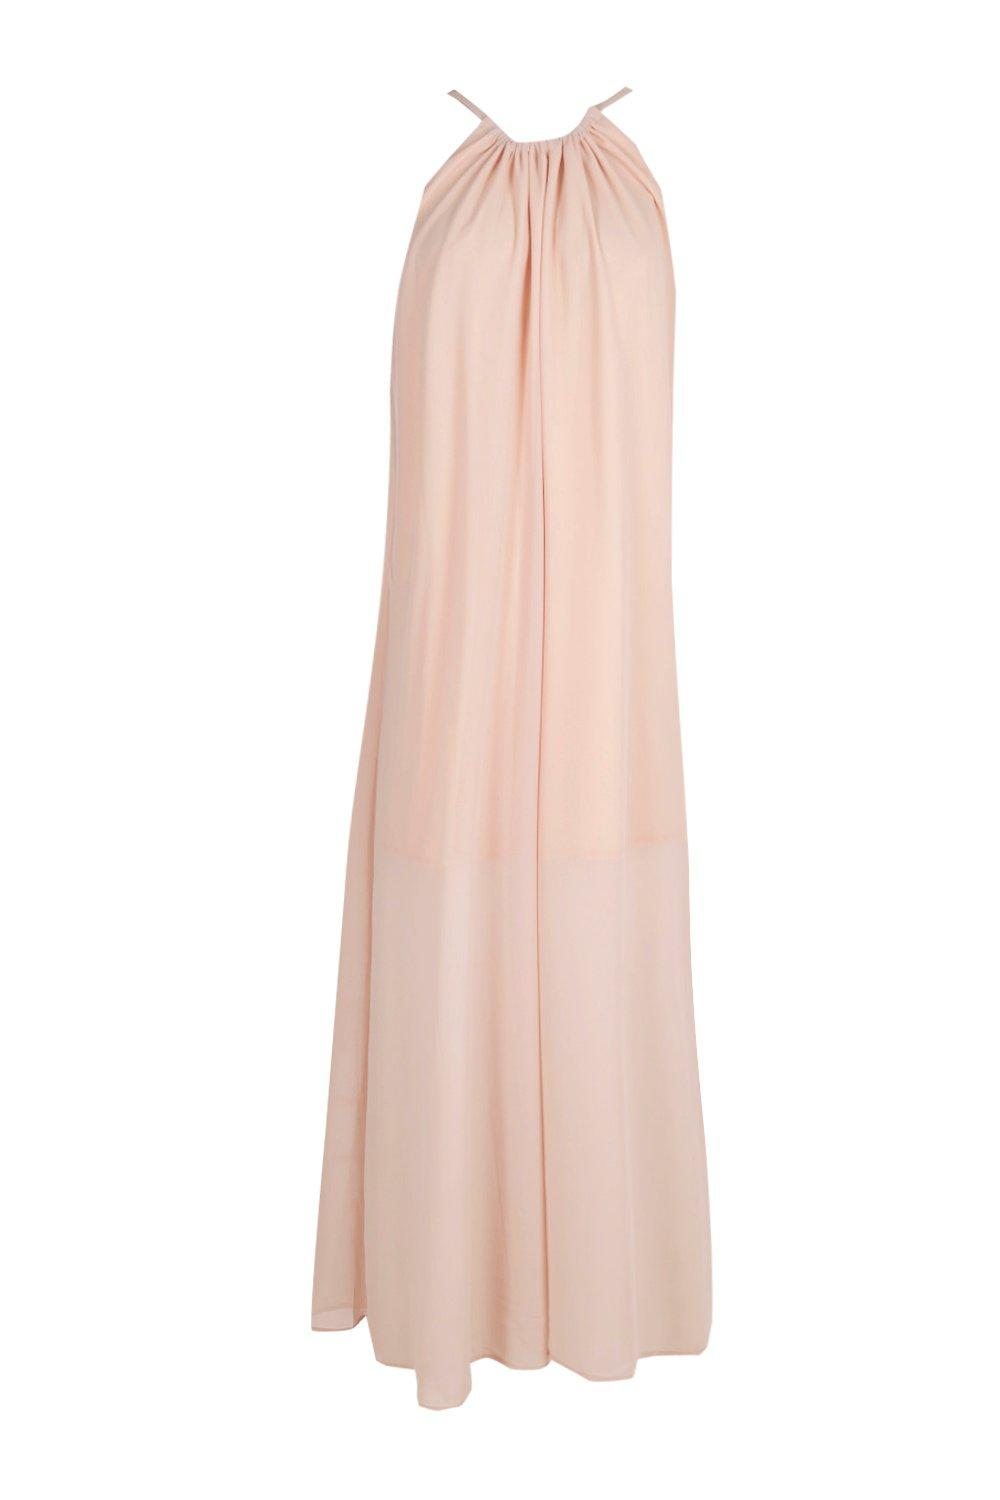 Unique  About Boohoo Womens Boutique Lily Embellished Chiffon Maxi Dress